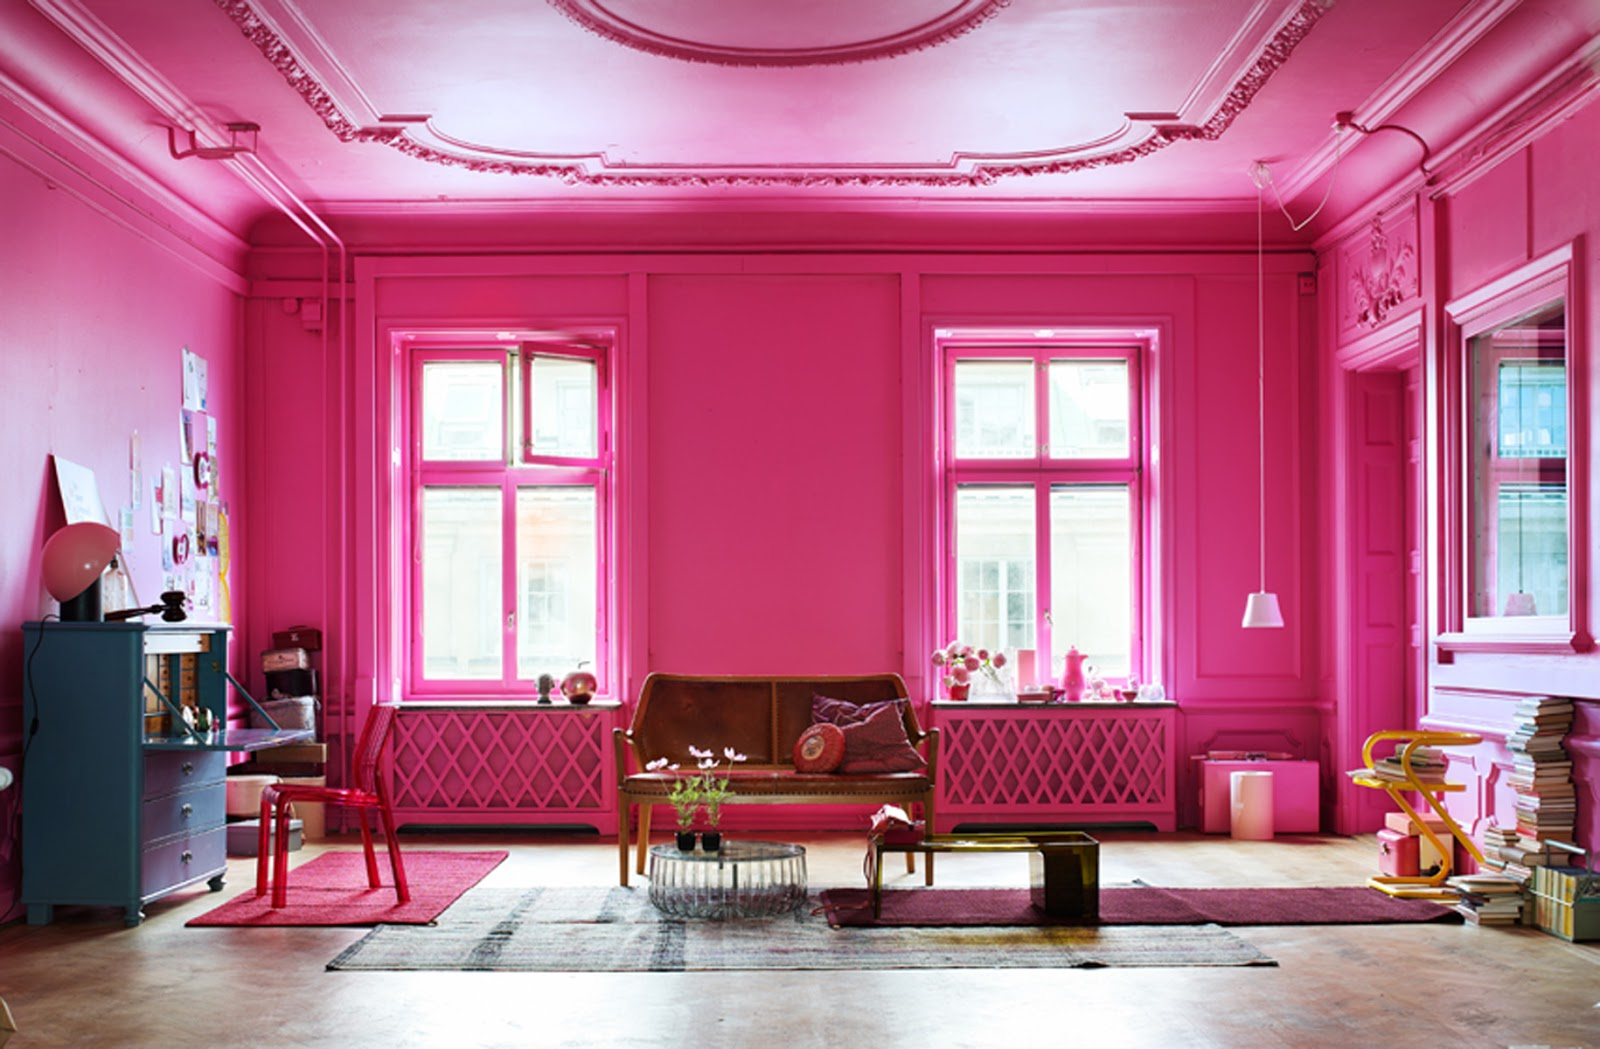 10 amazing pink living room interior design ideas